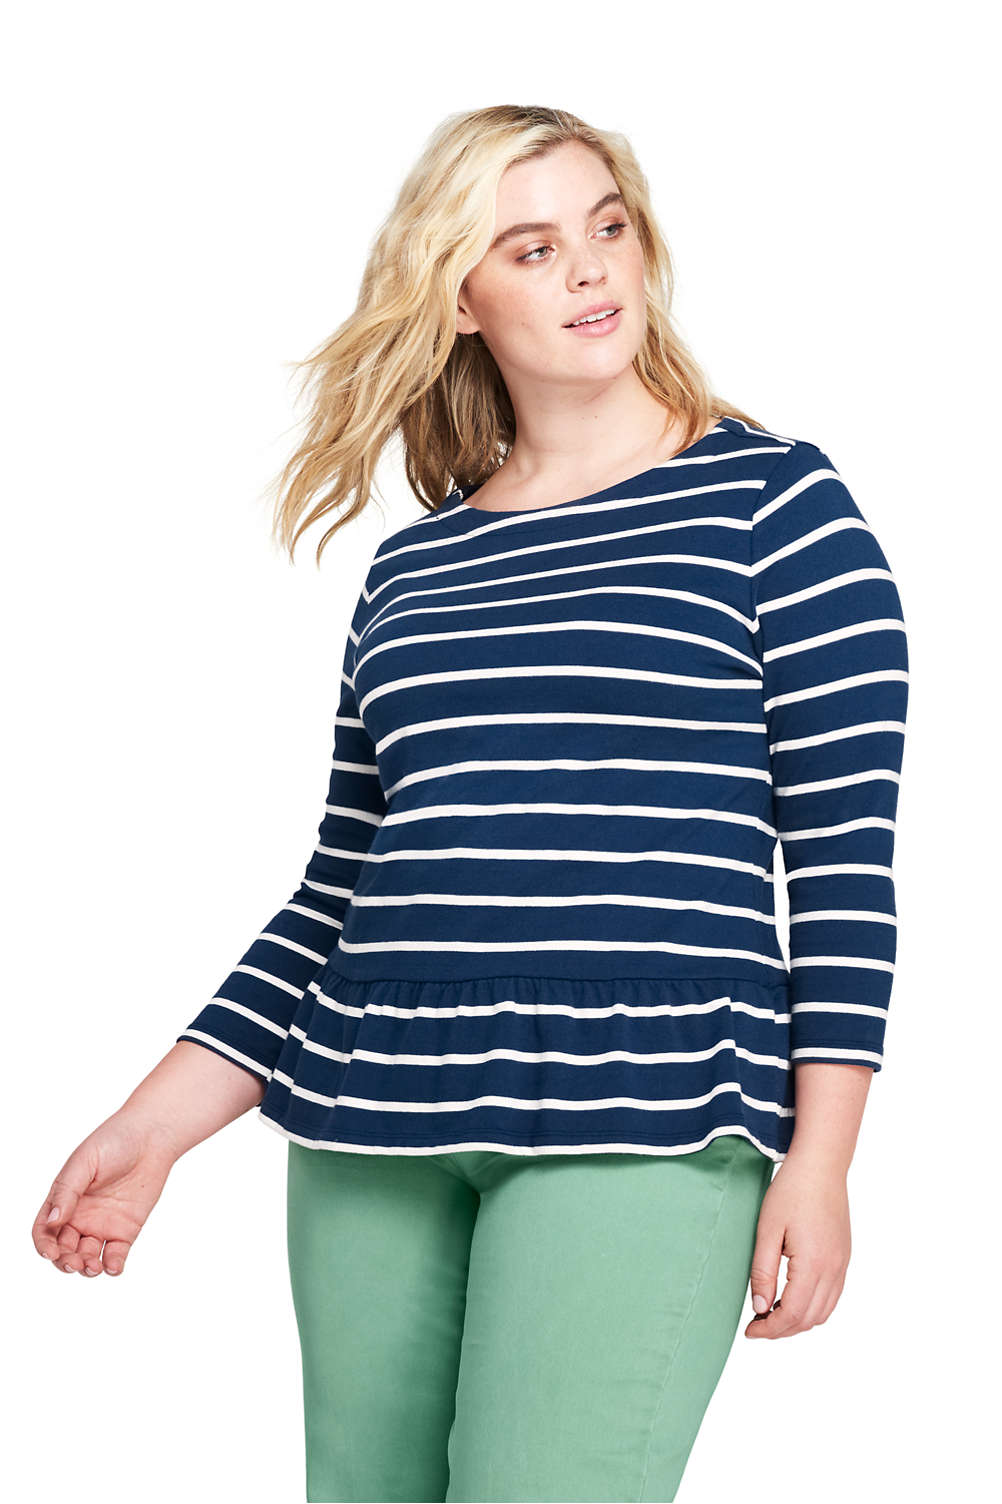 2c825b378eb83 Women s Plus Size 3 4 Sleeve Stripe Boatneck Peplum Top from Lands  End